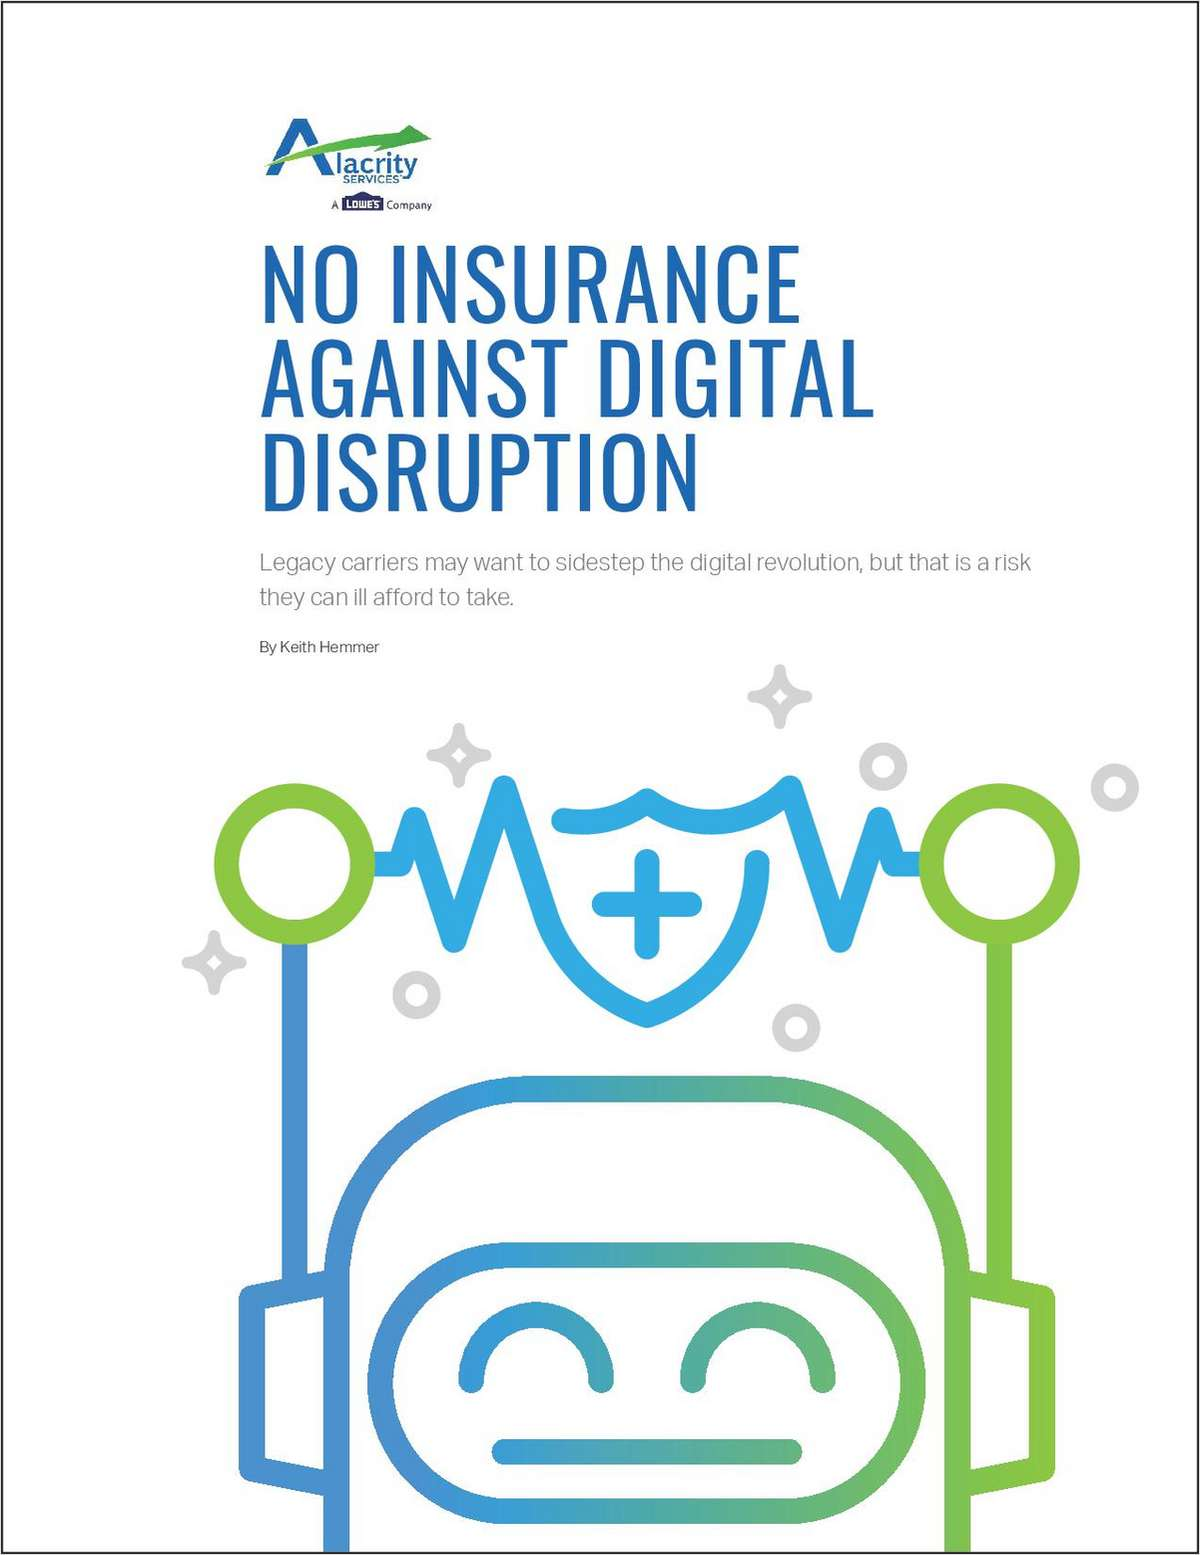 No Insurance Against Digital Disruption, Free Alacrity Services, a